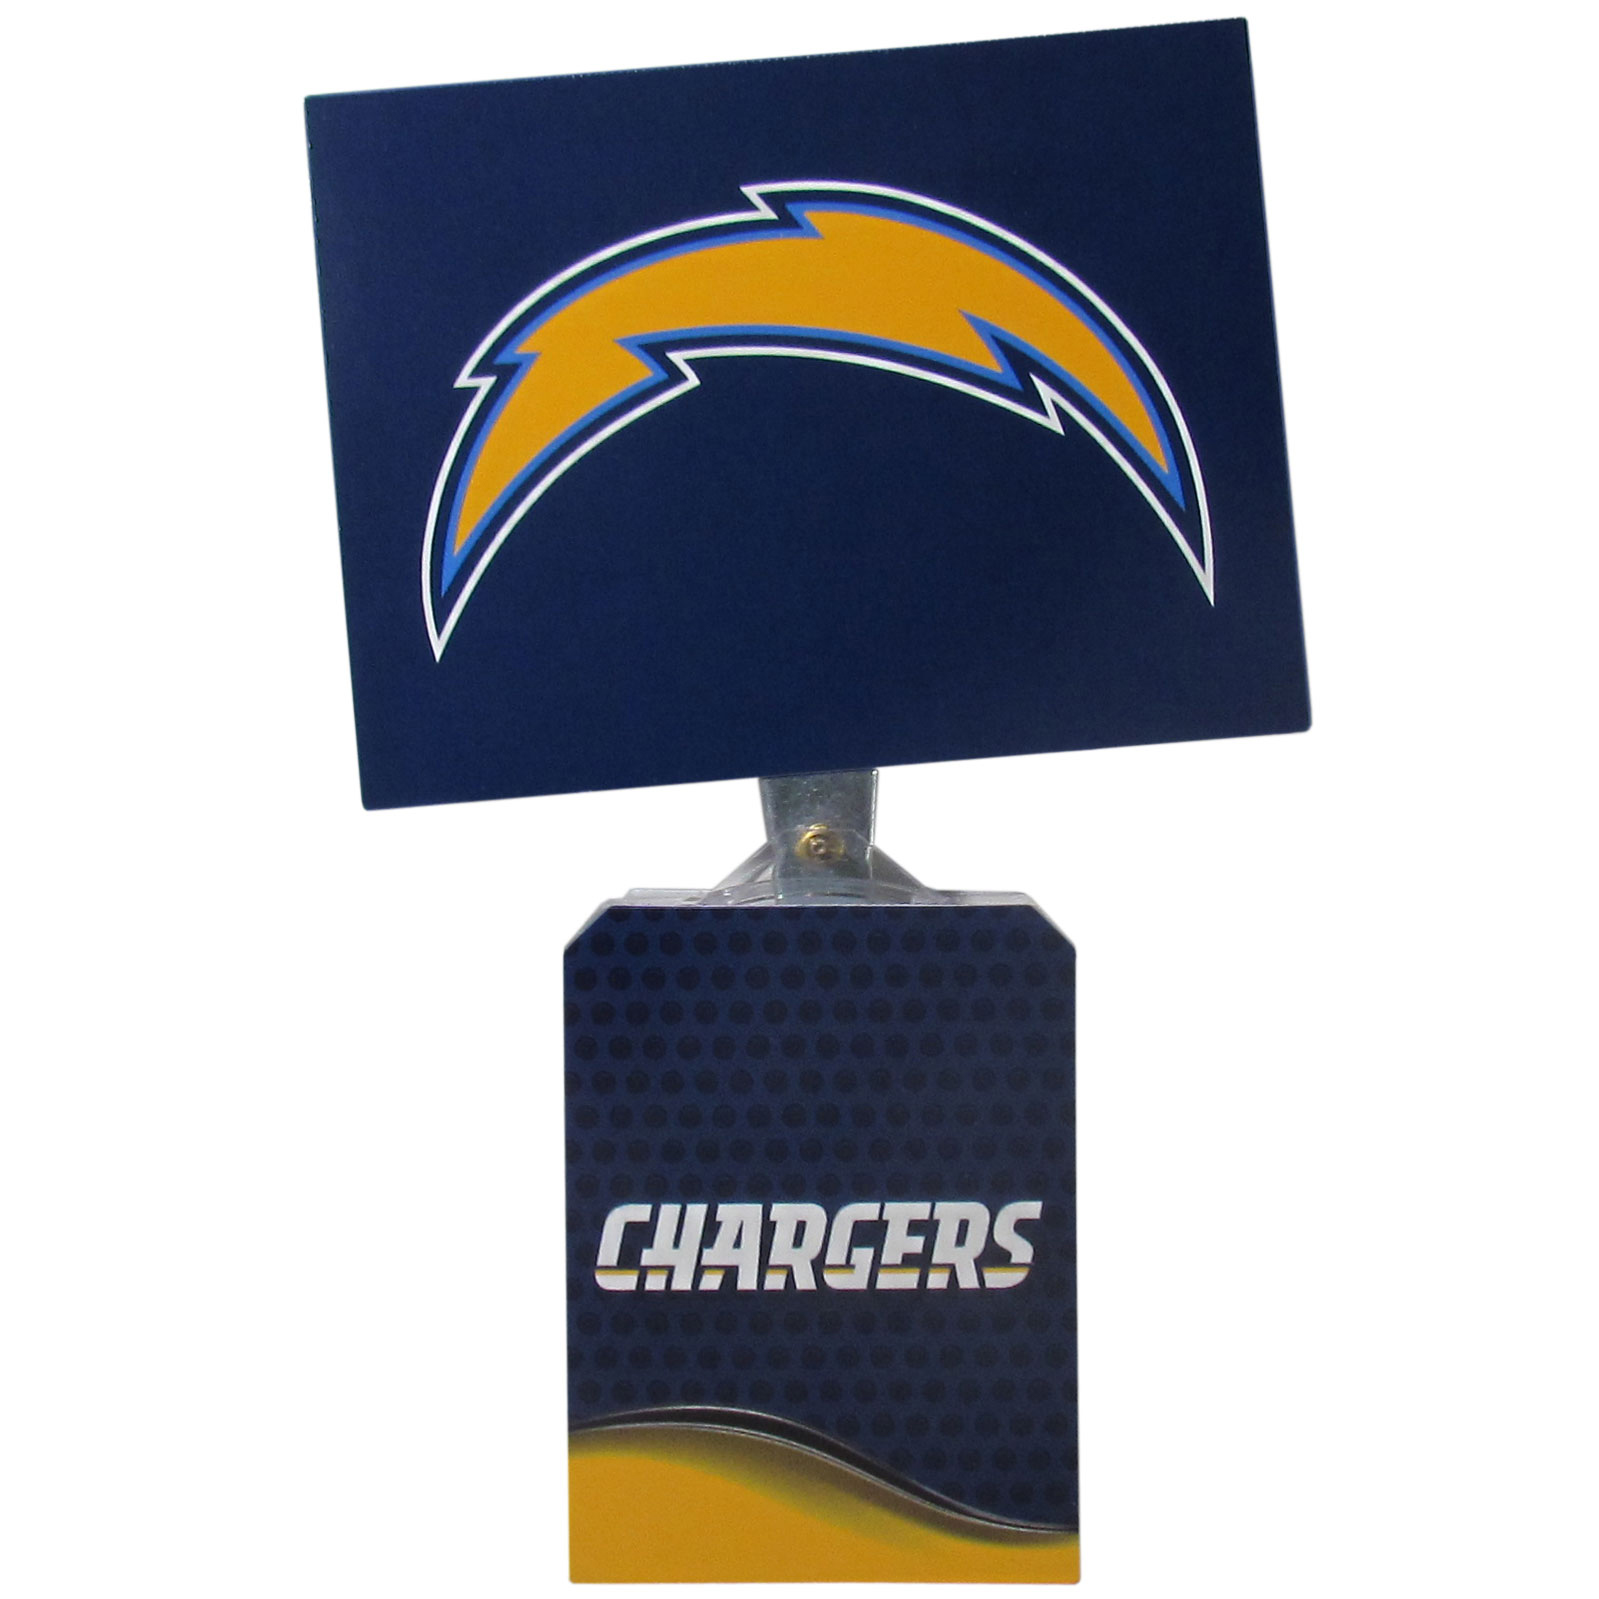 Los Angeles Chargers Solar Flags - Get pumped up on the way to game with Siskiyou's Chicago Bears Los Angeles Chargers Solar Flag that mounts to your dashboard or window. The in-motion solar flag also doubles as decoration for your tailgate or homegate! The base of the flag is 3 inches tall and the flag is 4 inches making the entire in-motion solar flag stand at 7 inches tall. Keep your spirit moving with your favorite team's Solar Flag.